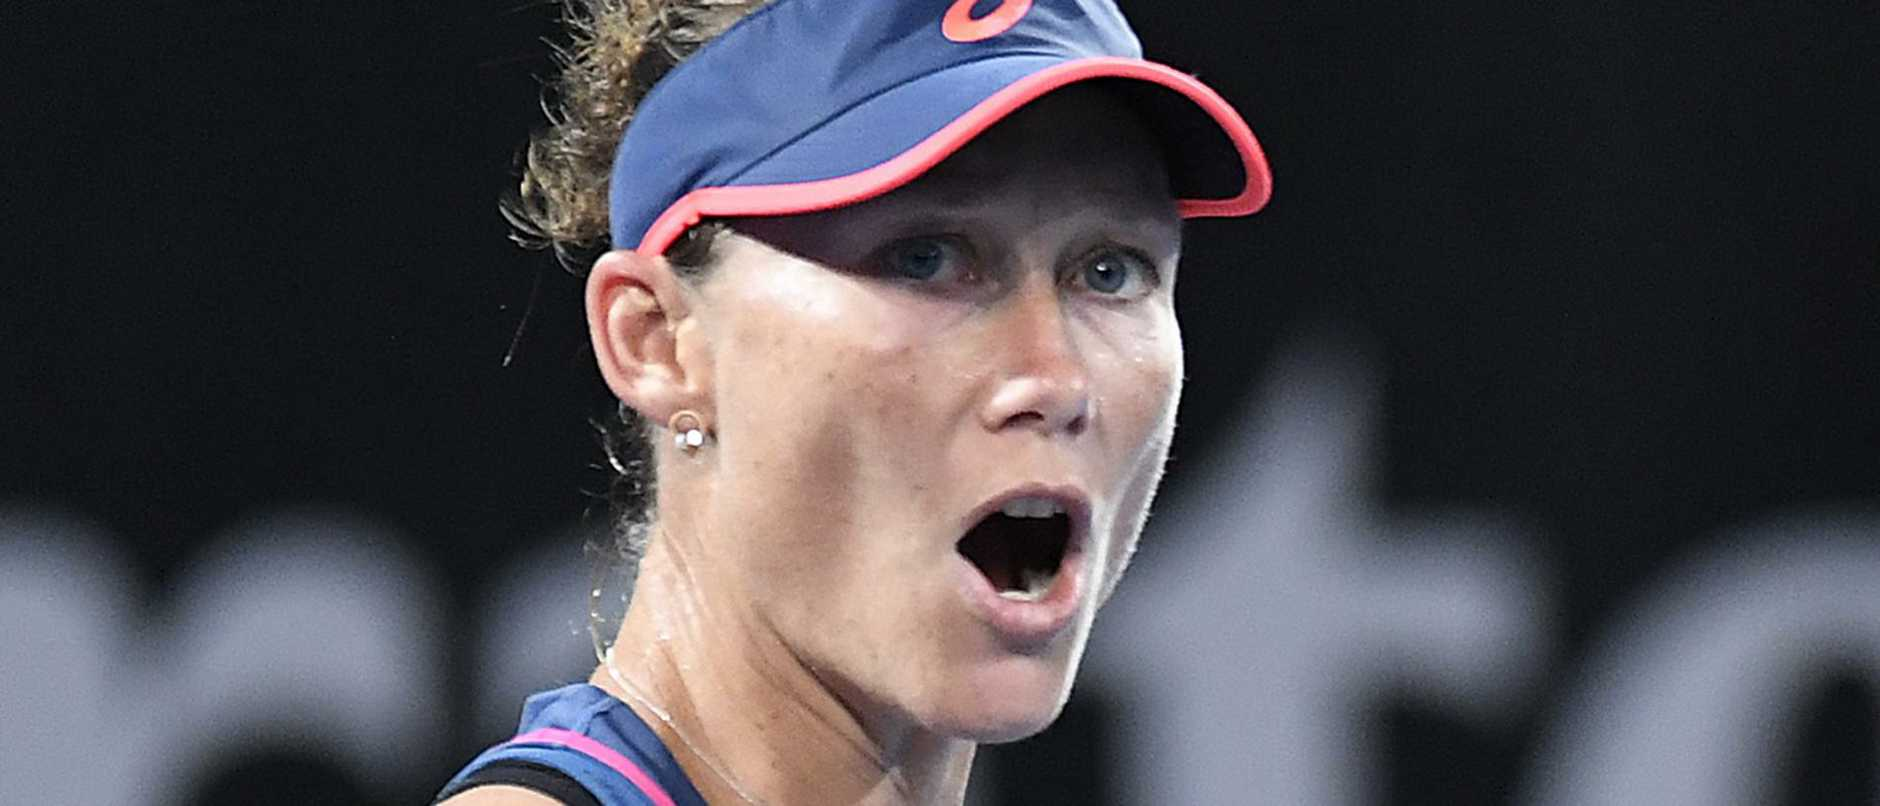 Sam Stosur has been taking full advantage of her wildcard.